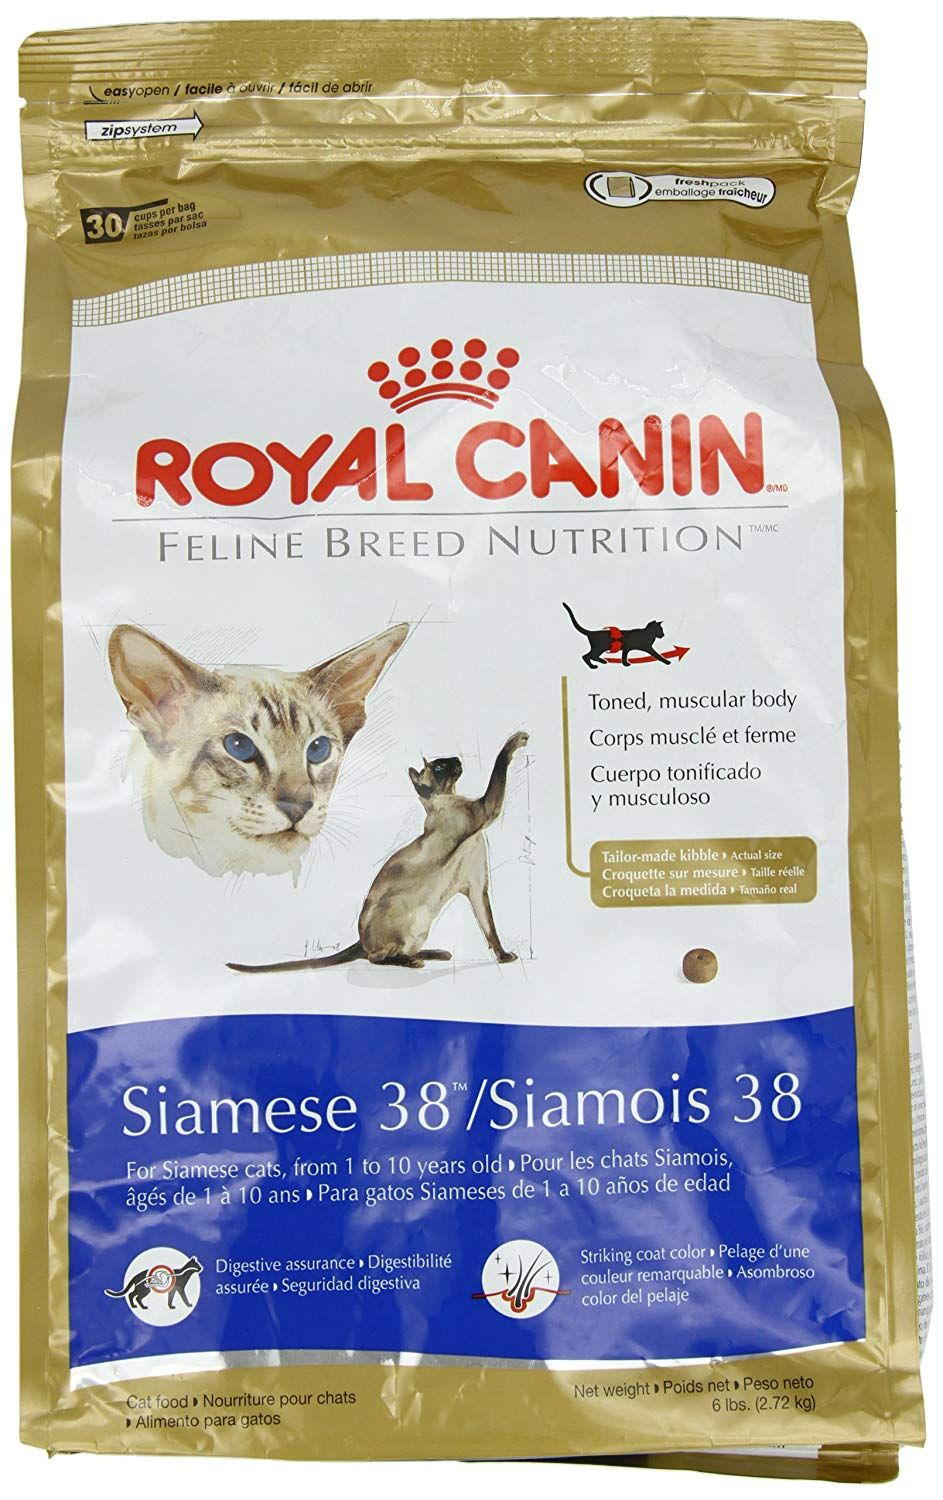 Royal Canin Dry Cat Food, Siamese 38 Formula, 6Pound Bag